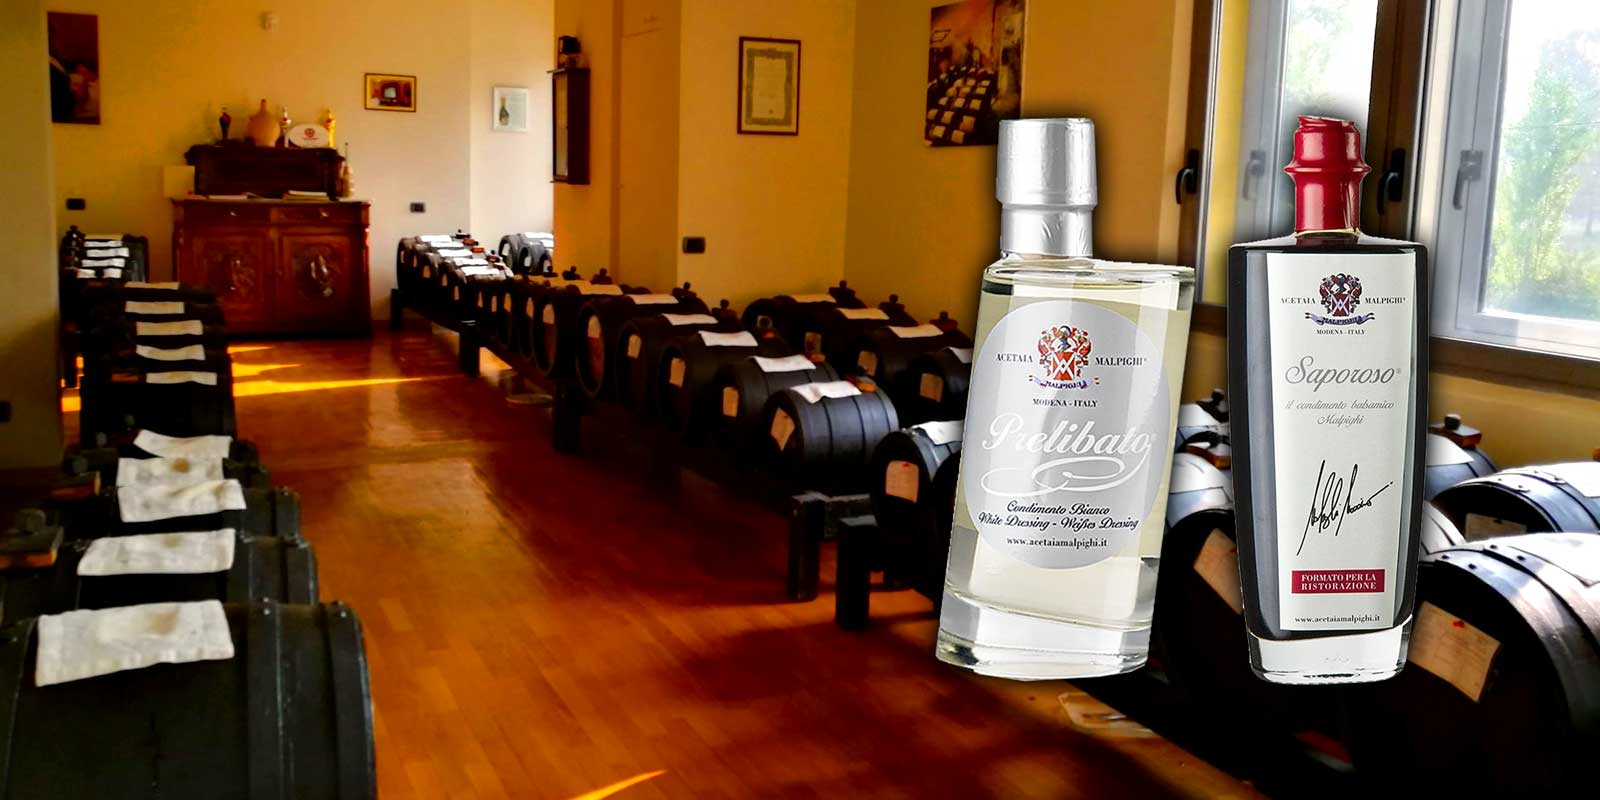 Vinegar - Balsamic Vinegar of Malpighi For more than 200 years the Fa. Malpighi produces high Acetos. Only exceptionally excellent one can expect from the company. Malpighi in Modena, Italy.